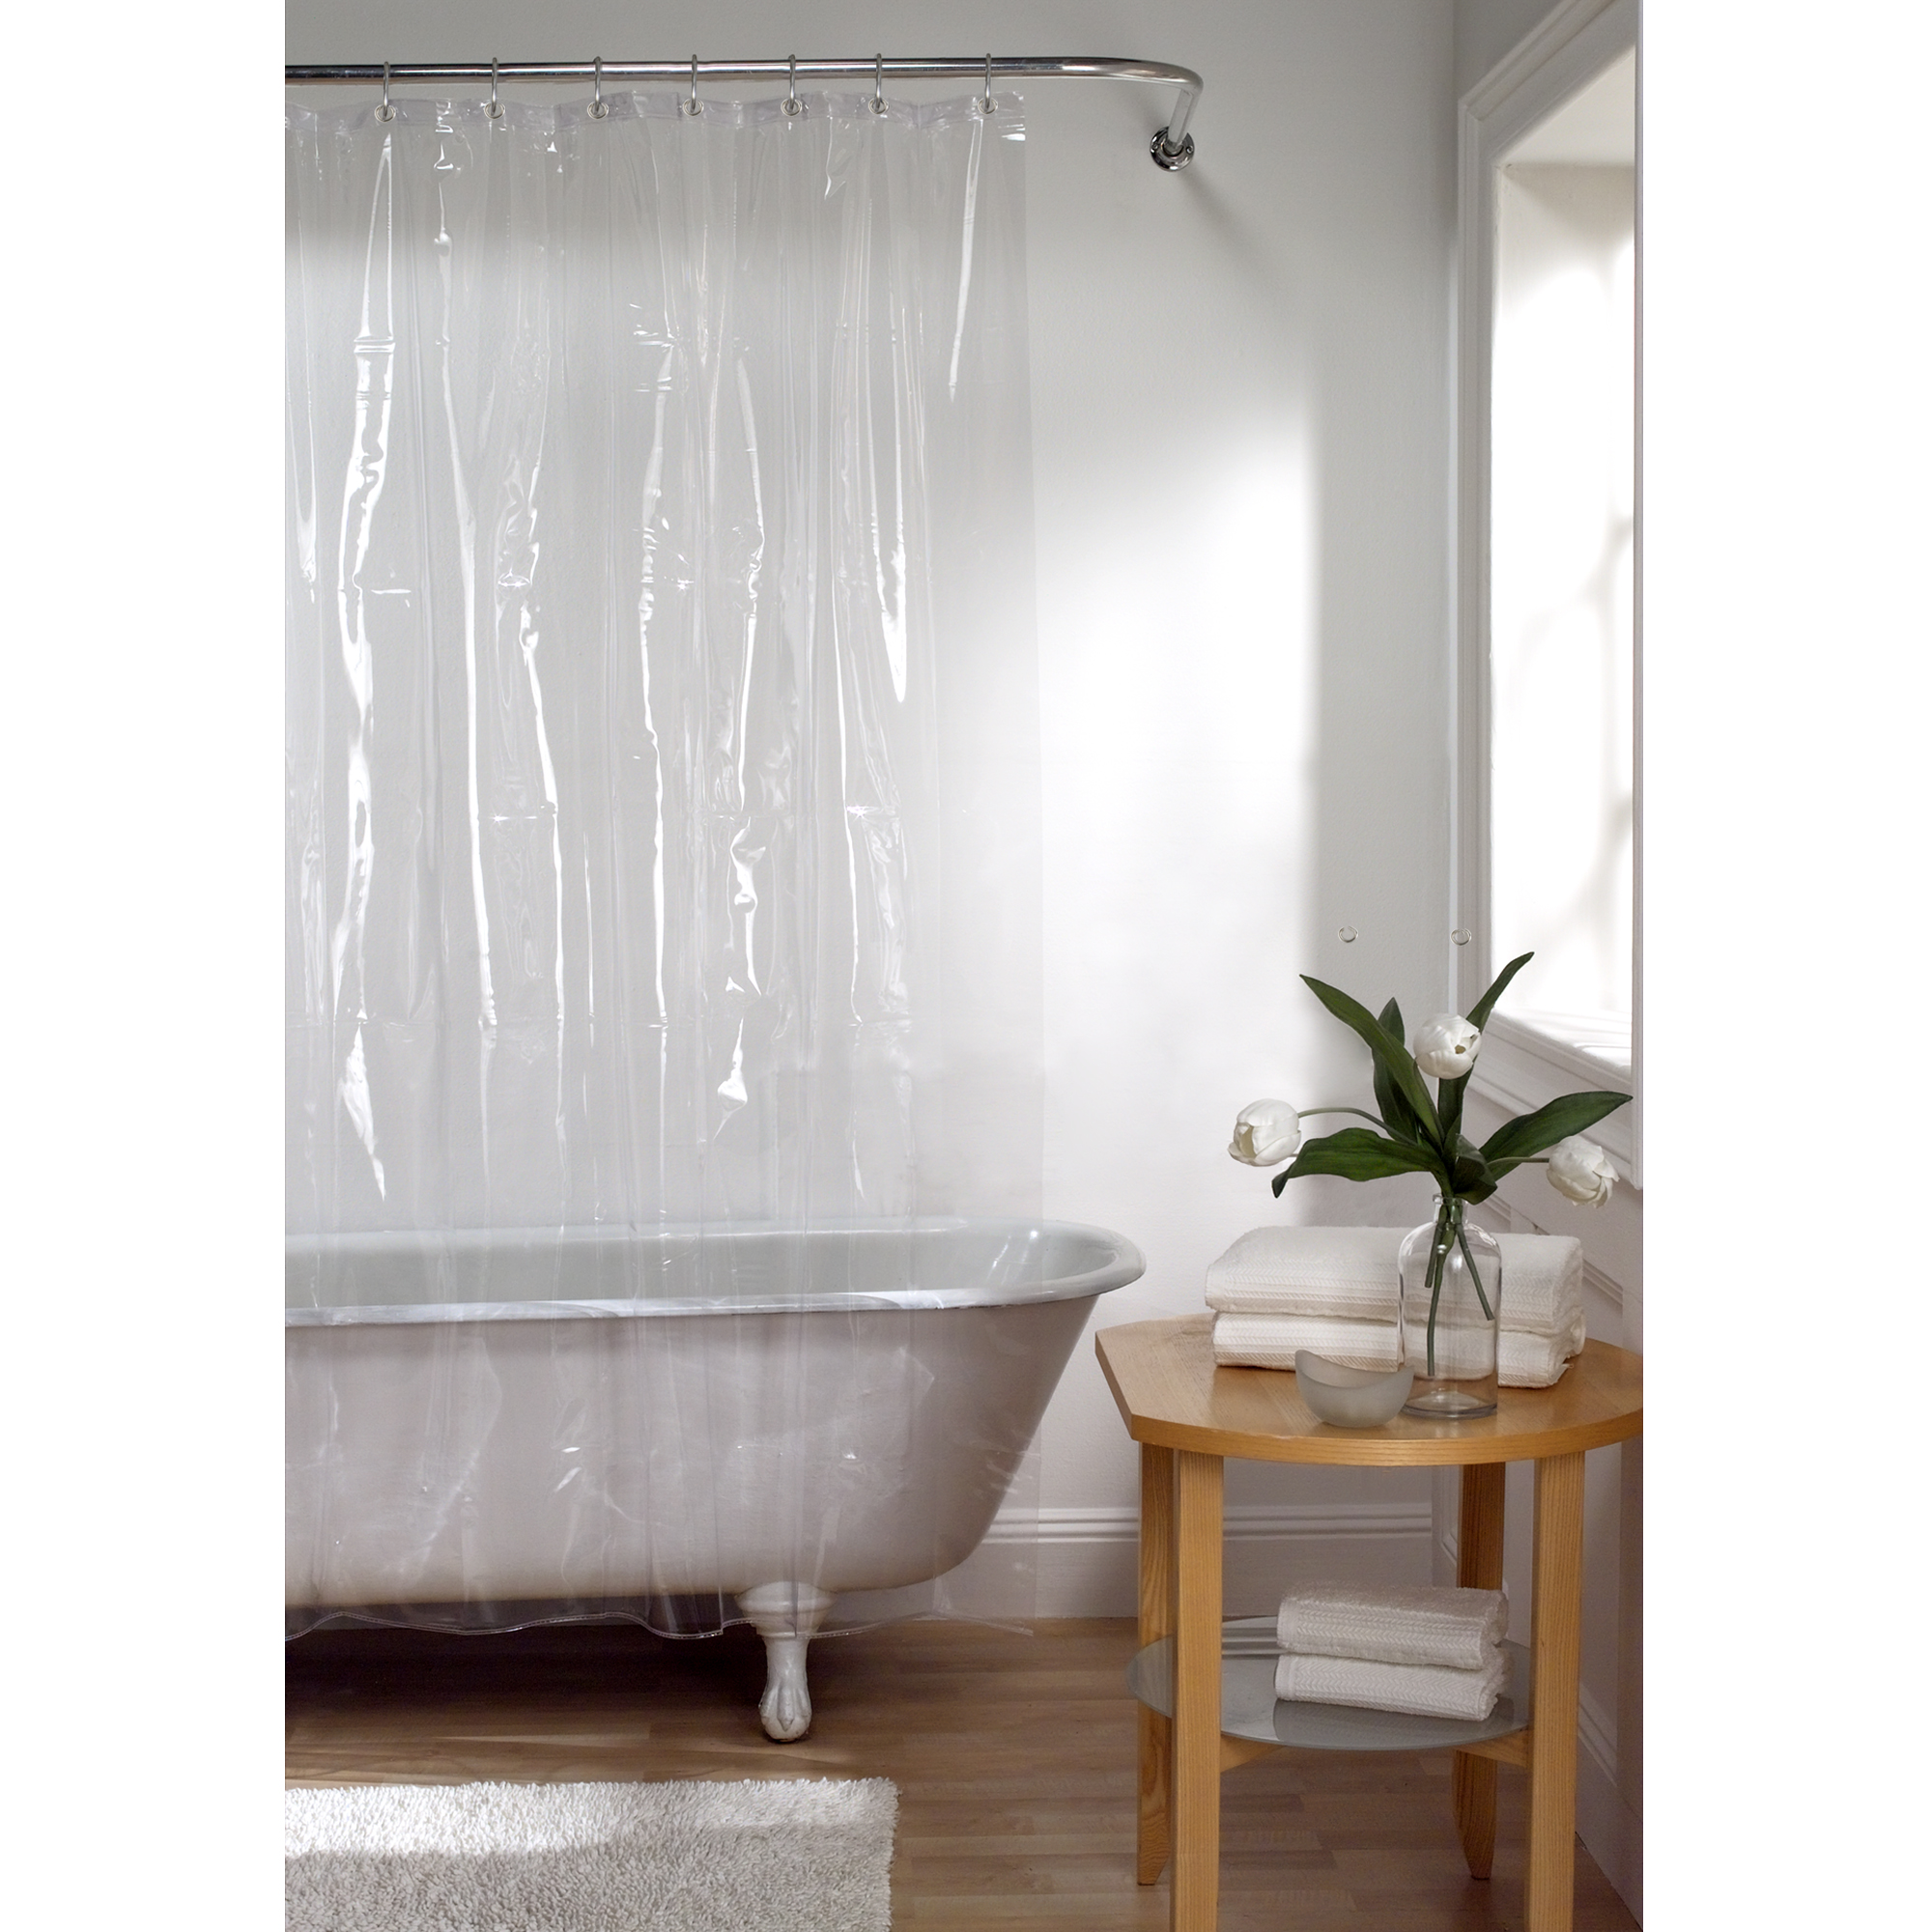 "Maytex Super Heavyweight Premium 10-Gauge Shower Curtain or Liner 72"" x 72"""